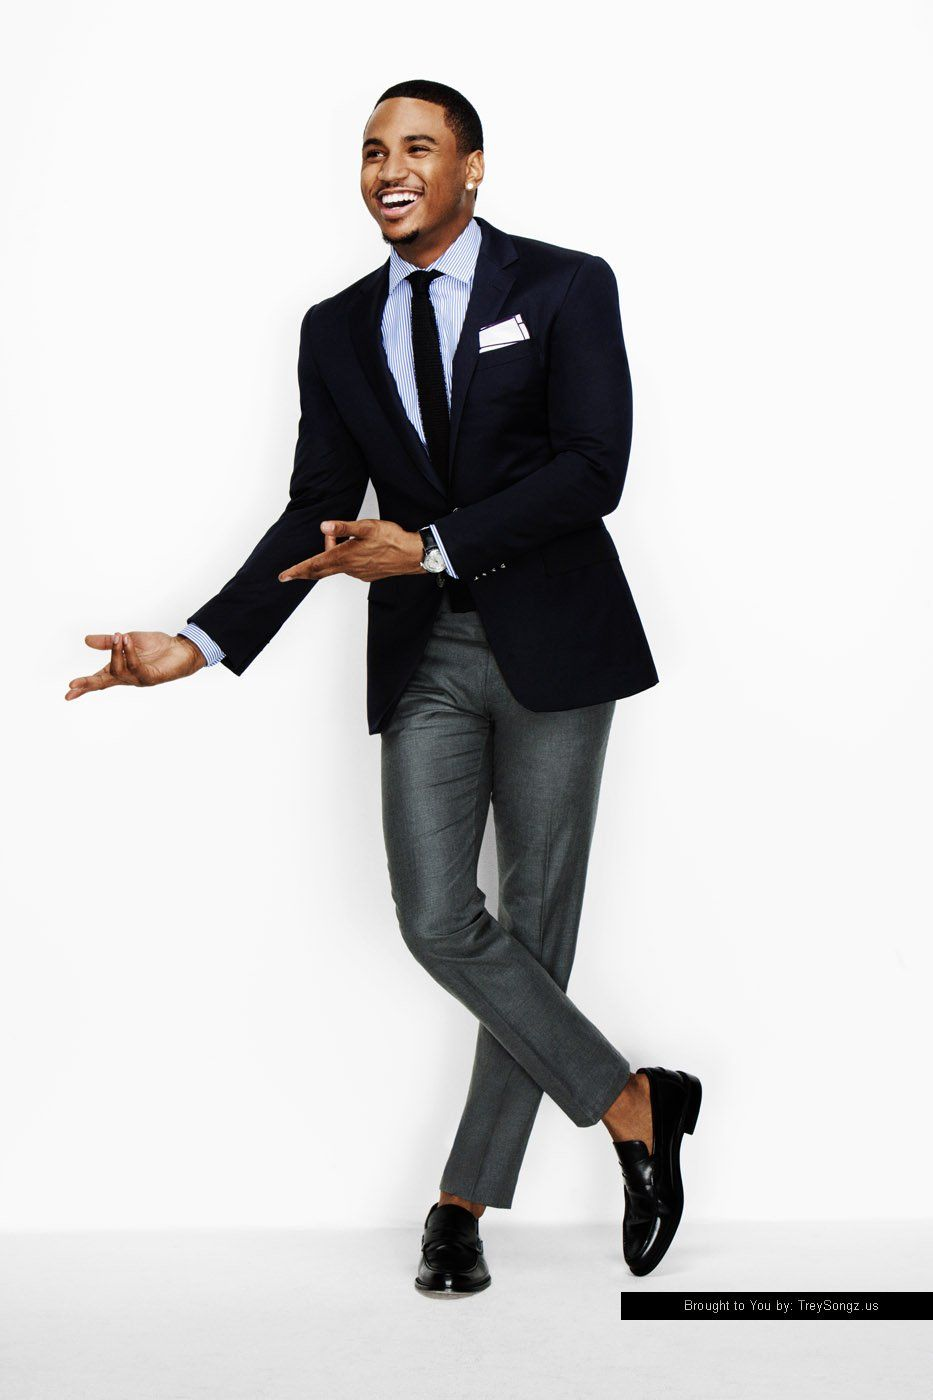 Buy Songz Trey fashion pictures trends